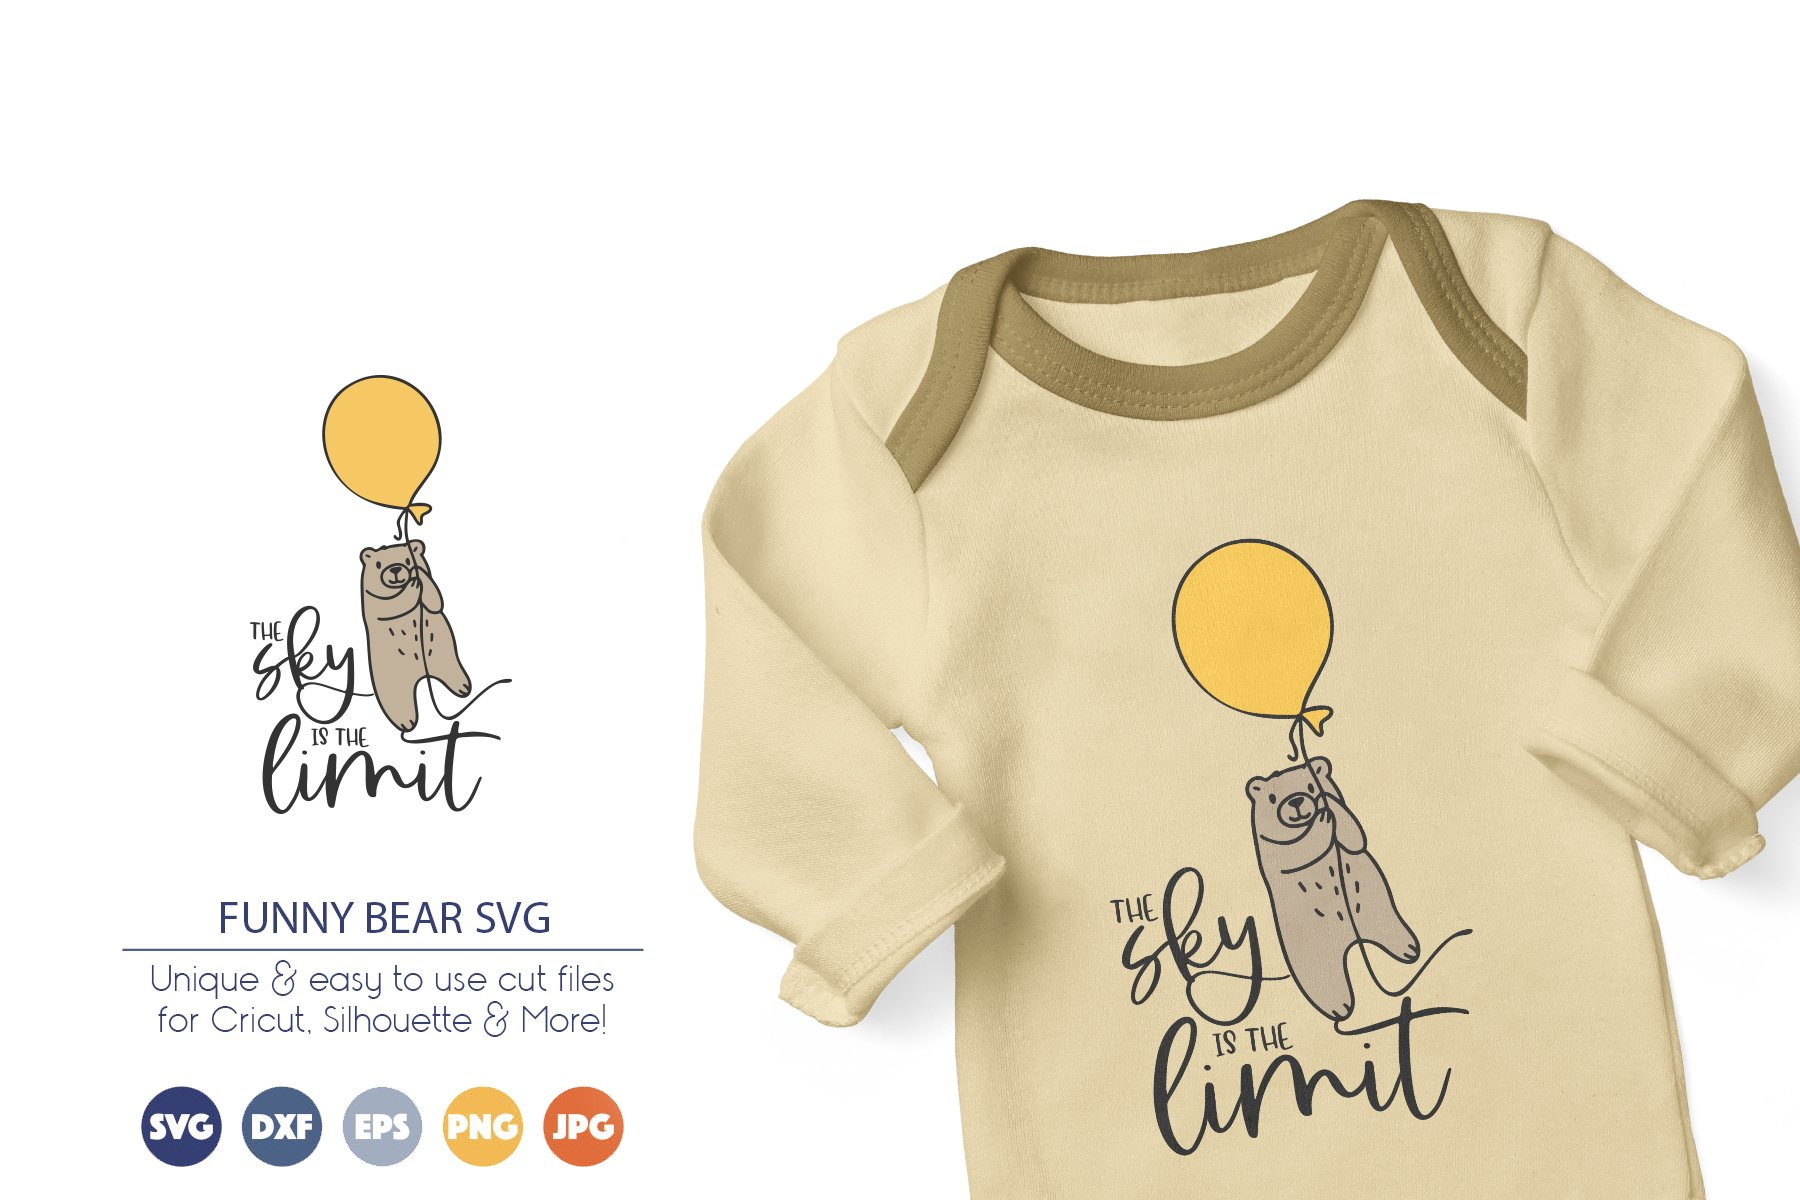 Bear SVG   Inspirational SVG   The Sky is the Limit example image 1